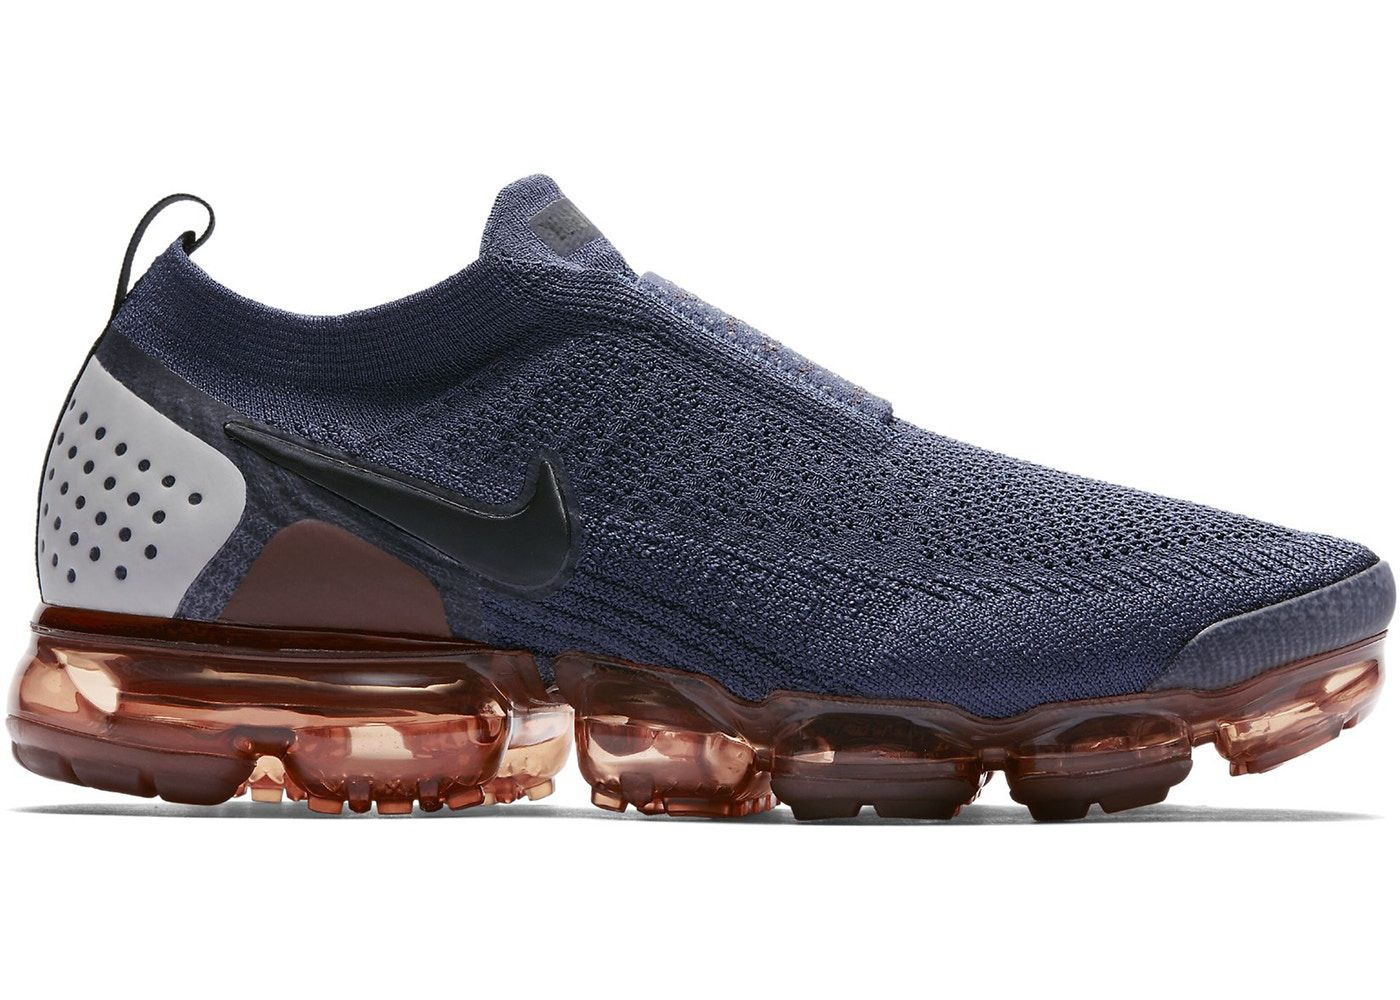 ab256e3bfd3d3 Check out the Air VaporMax Moc 2 Thunder Blue available on StockX